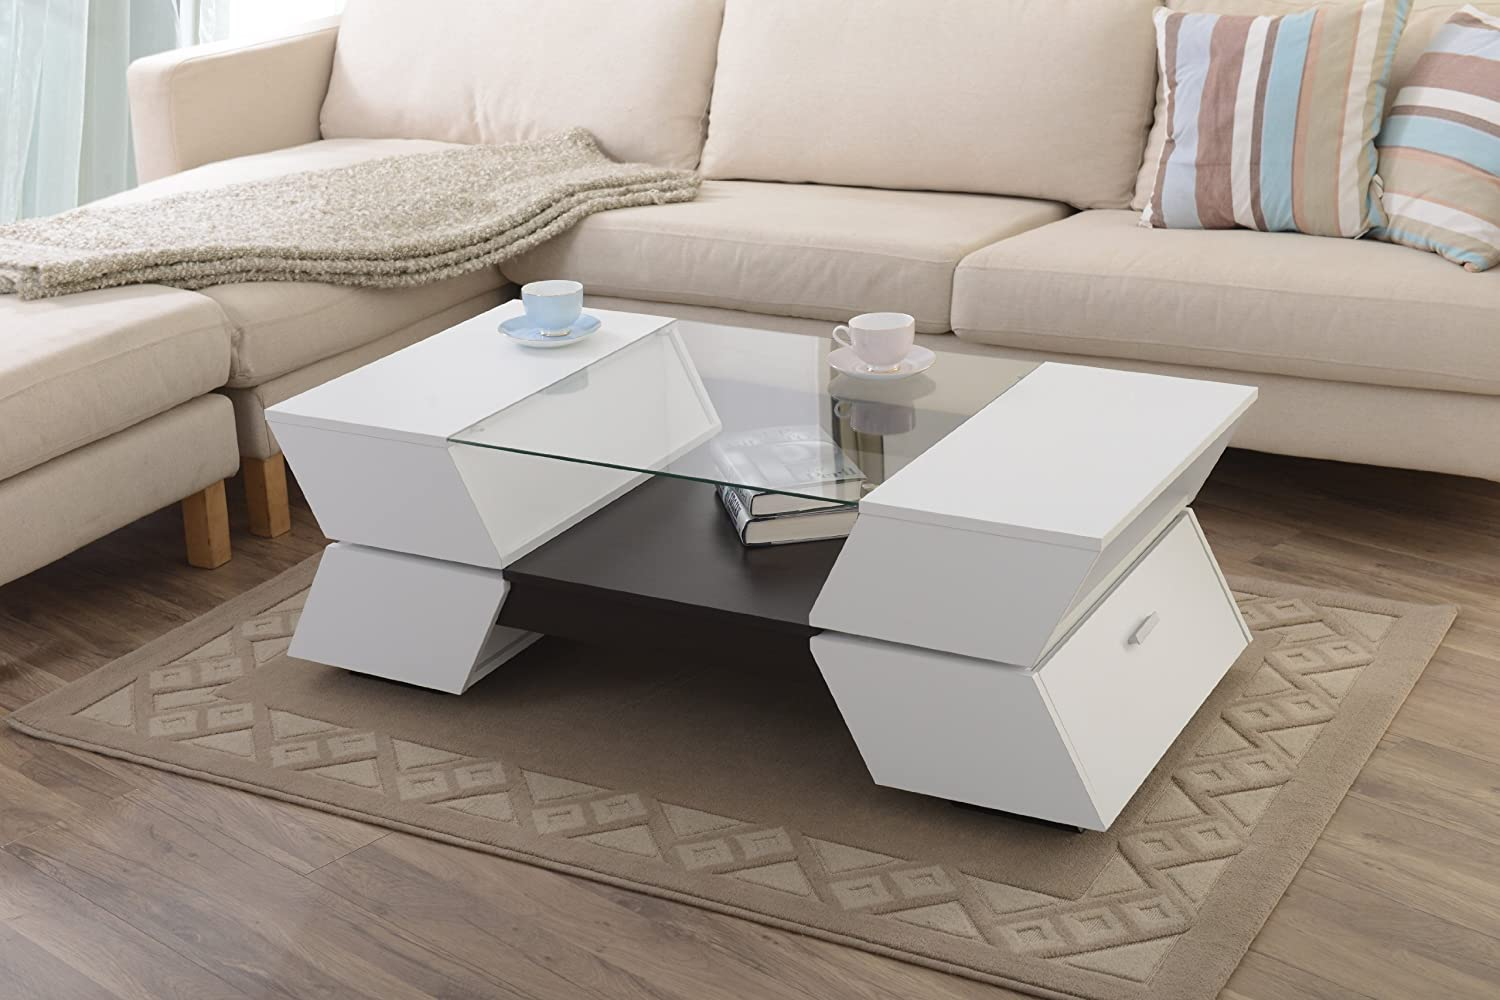 White glass coffee table - Furniture Of America Enitial Lab Ariadne 4 Compartment Coffee Table With Glass Insert White And Walnut Finish Amazon Ca Home Kitchen